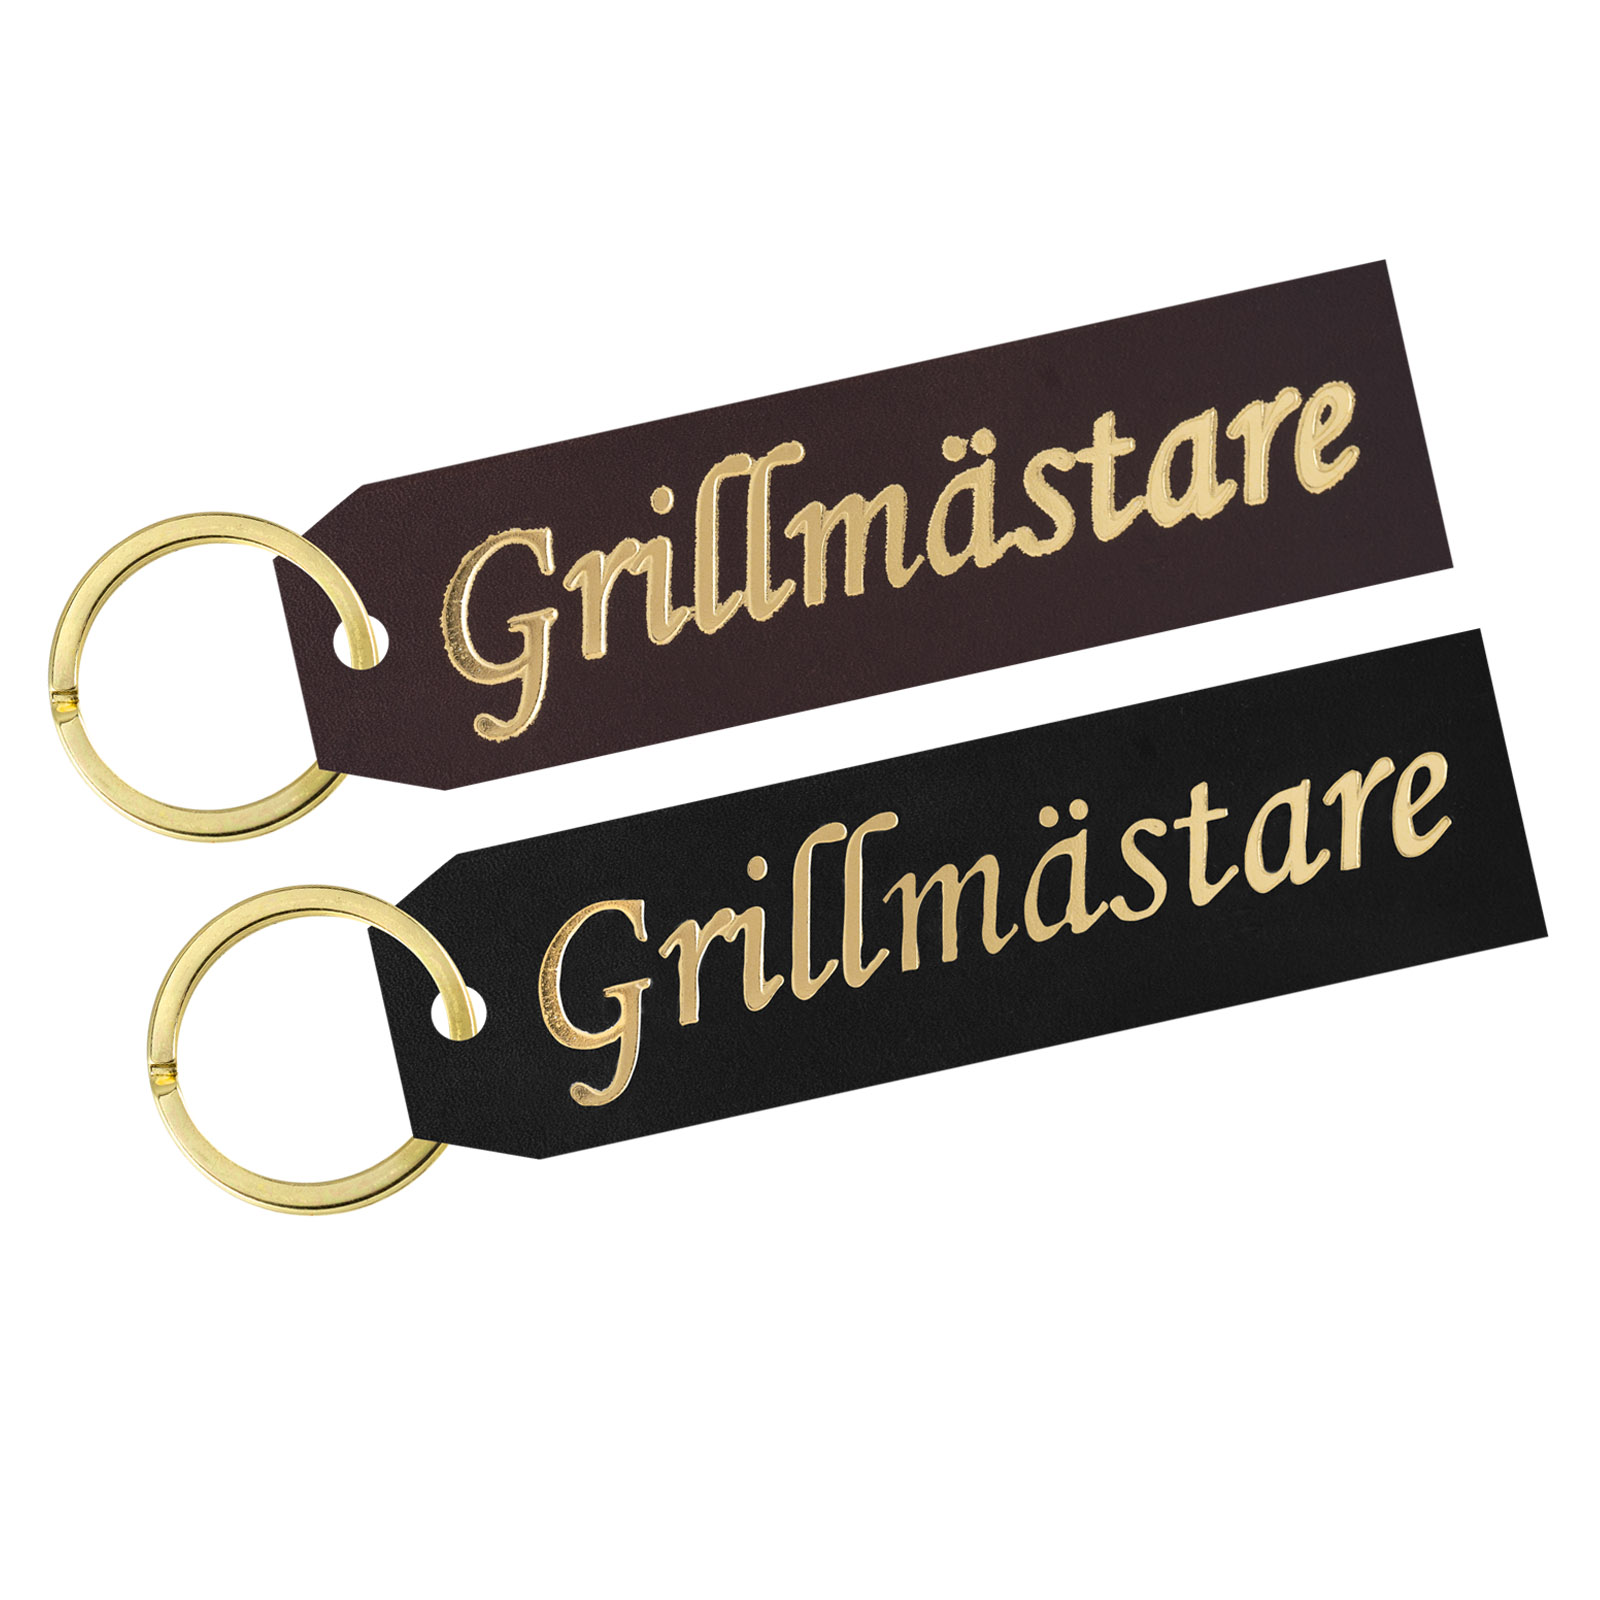 Key ring Grillmästare gold